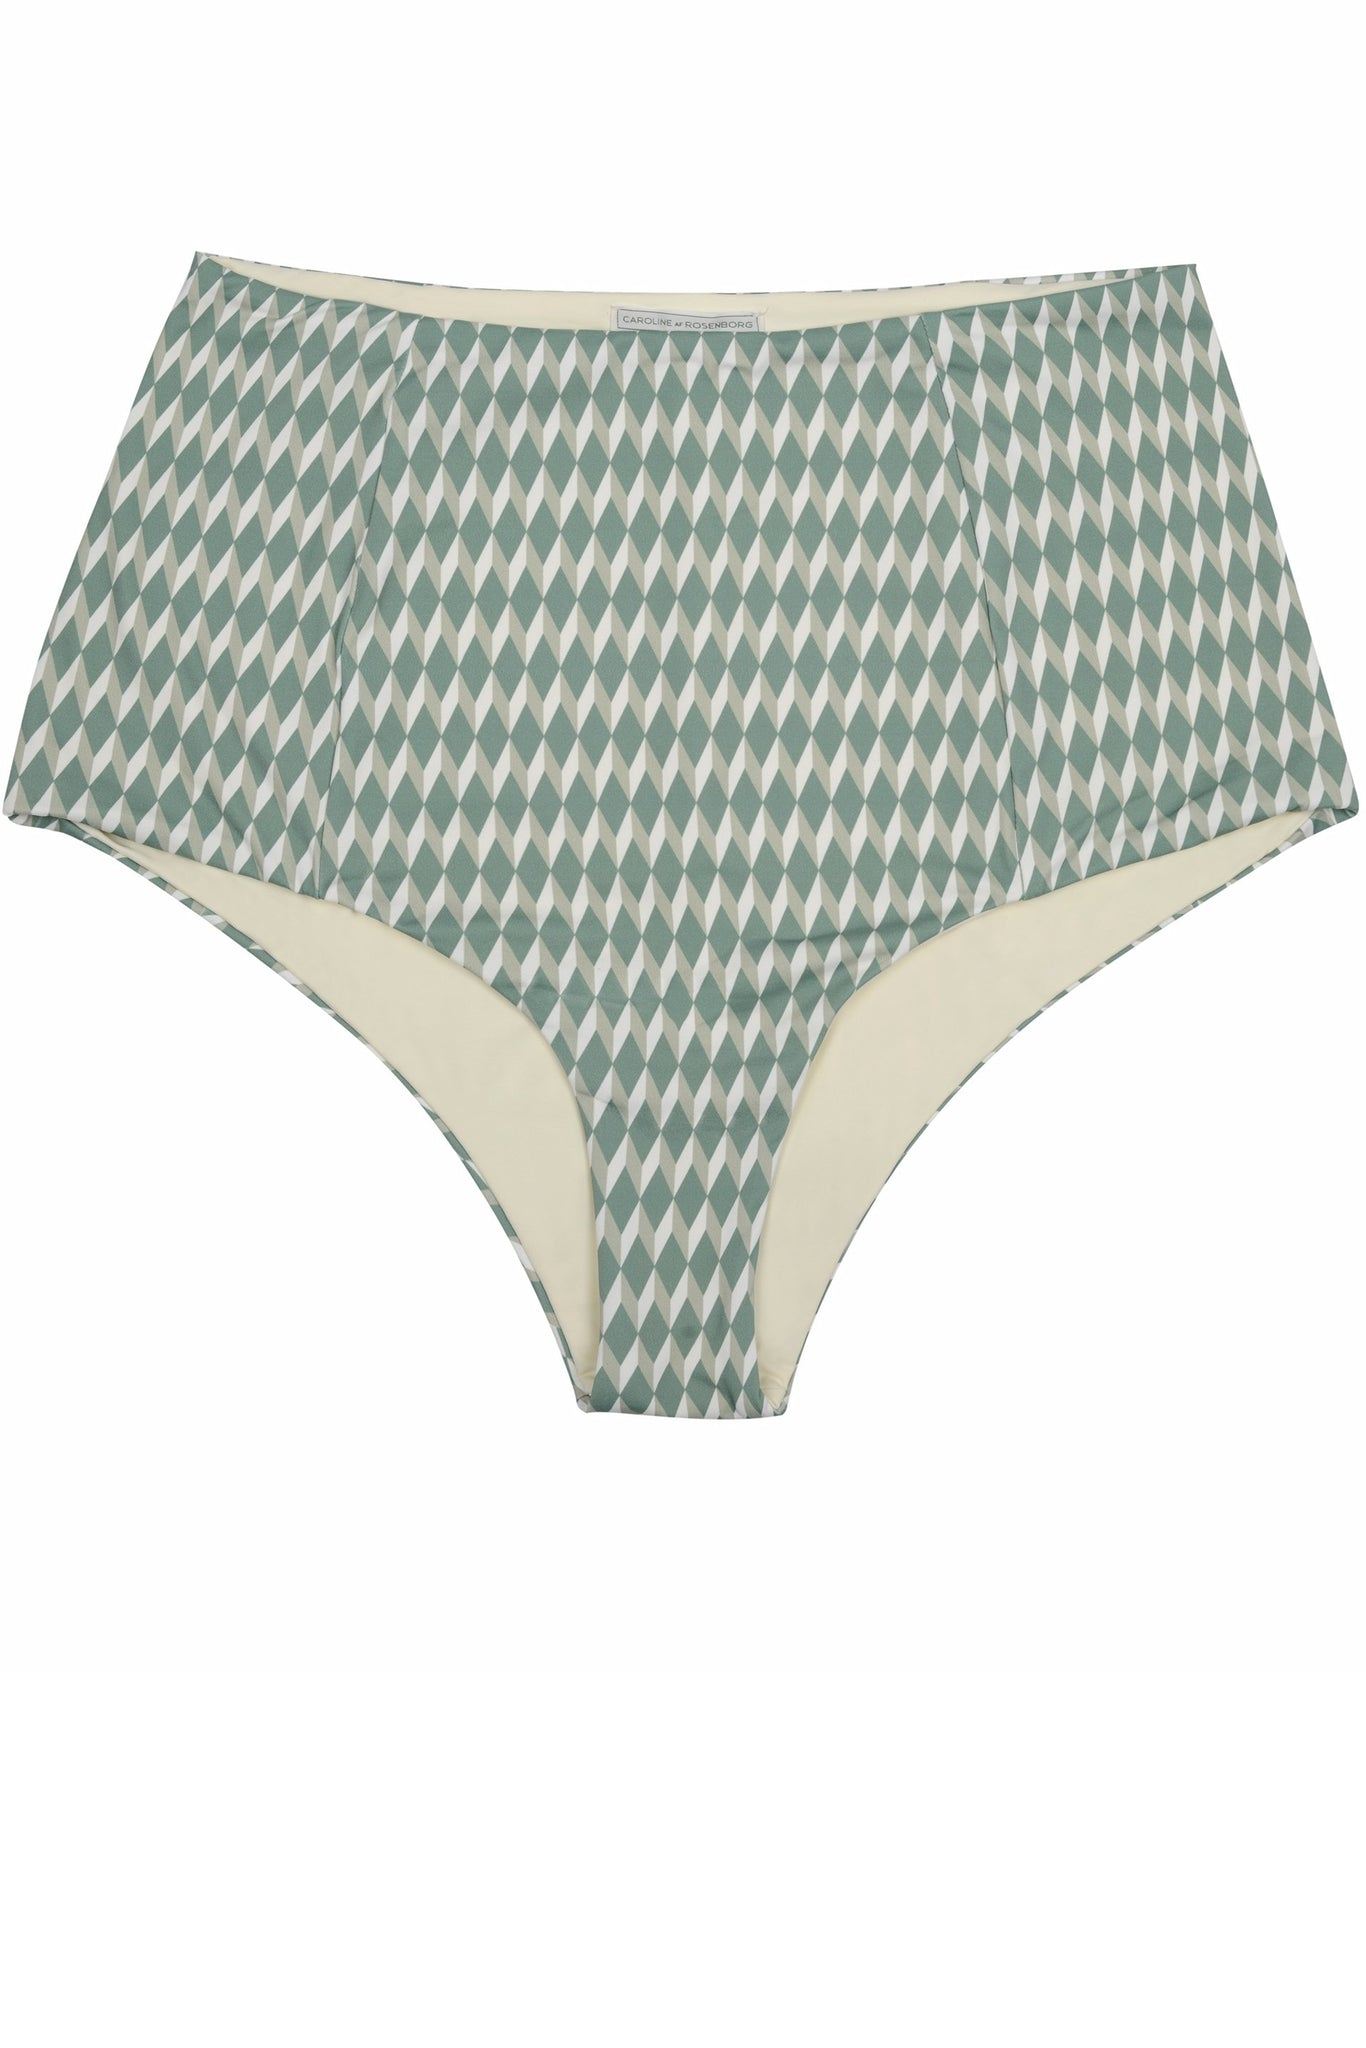 High waisted bikini bottoms in green cream geometric print, reversible with a retro look by Caroline af Rosenborg